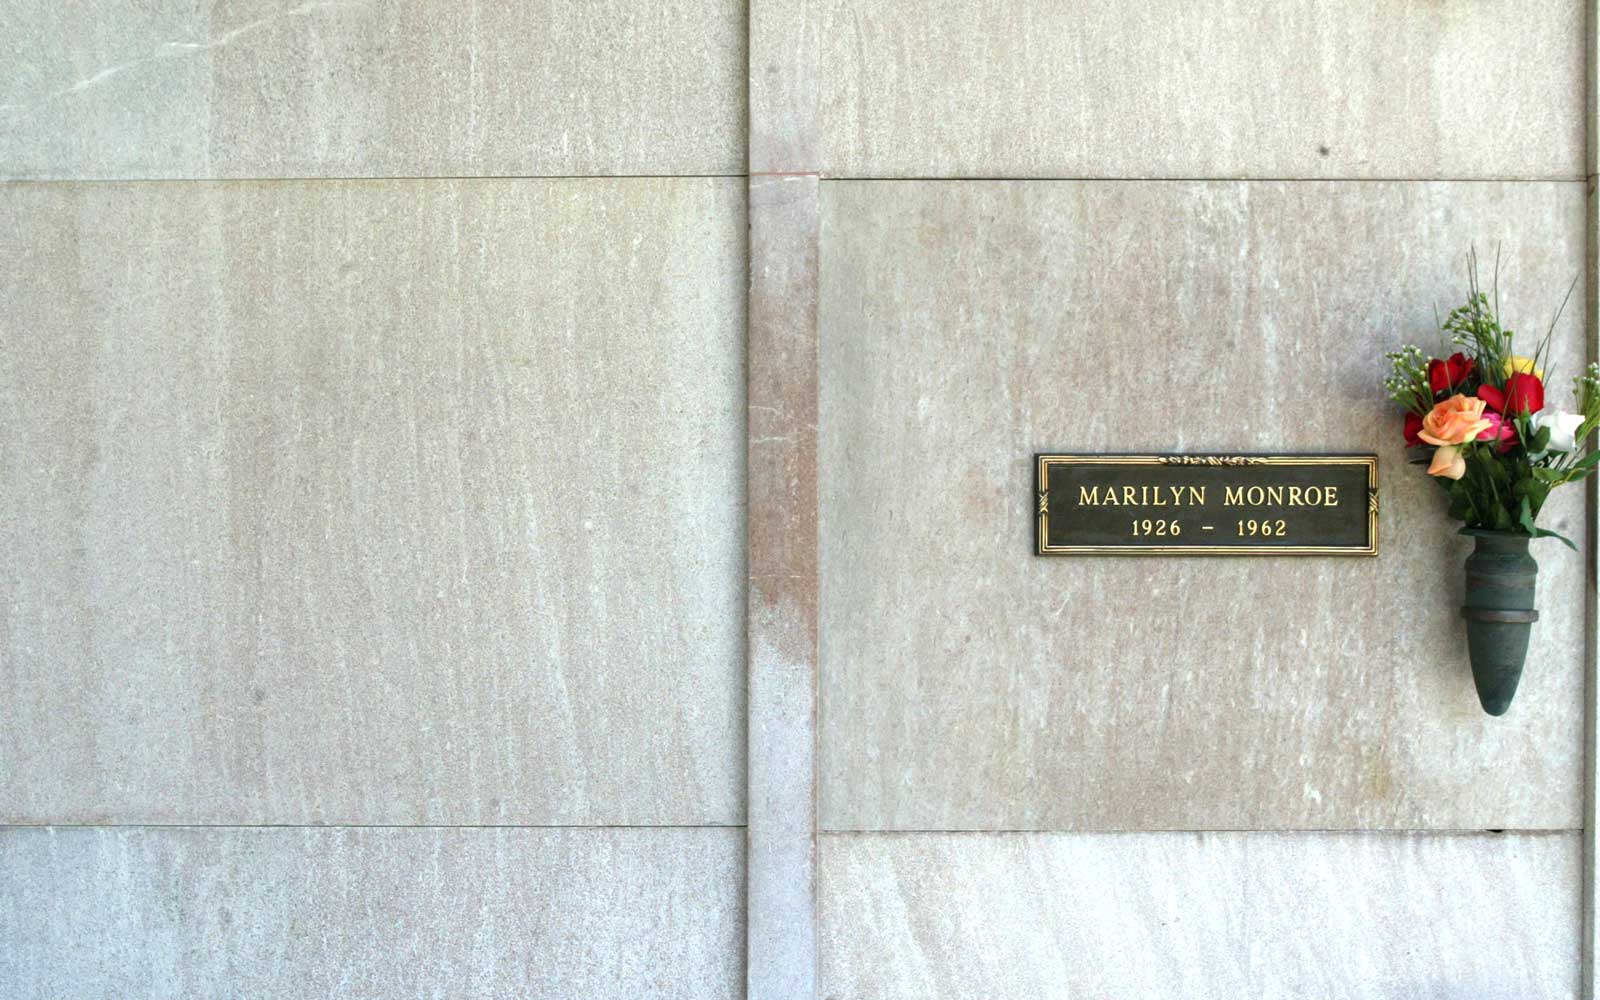 Marilyn Monroe Burial Site